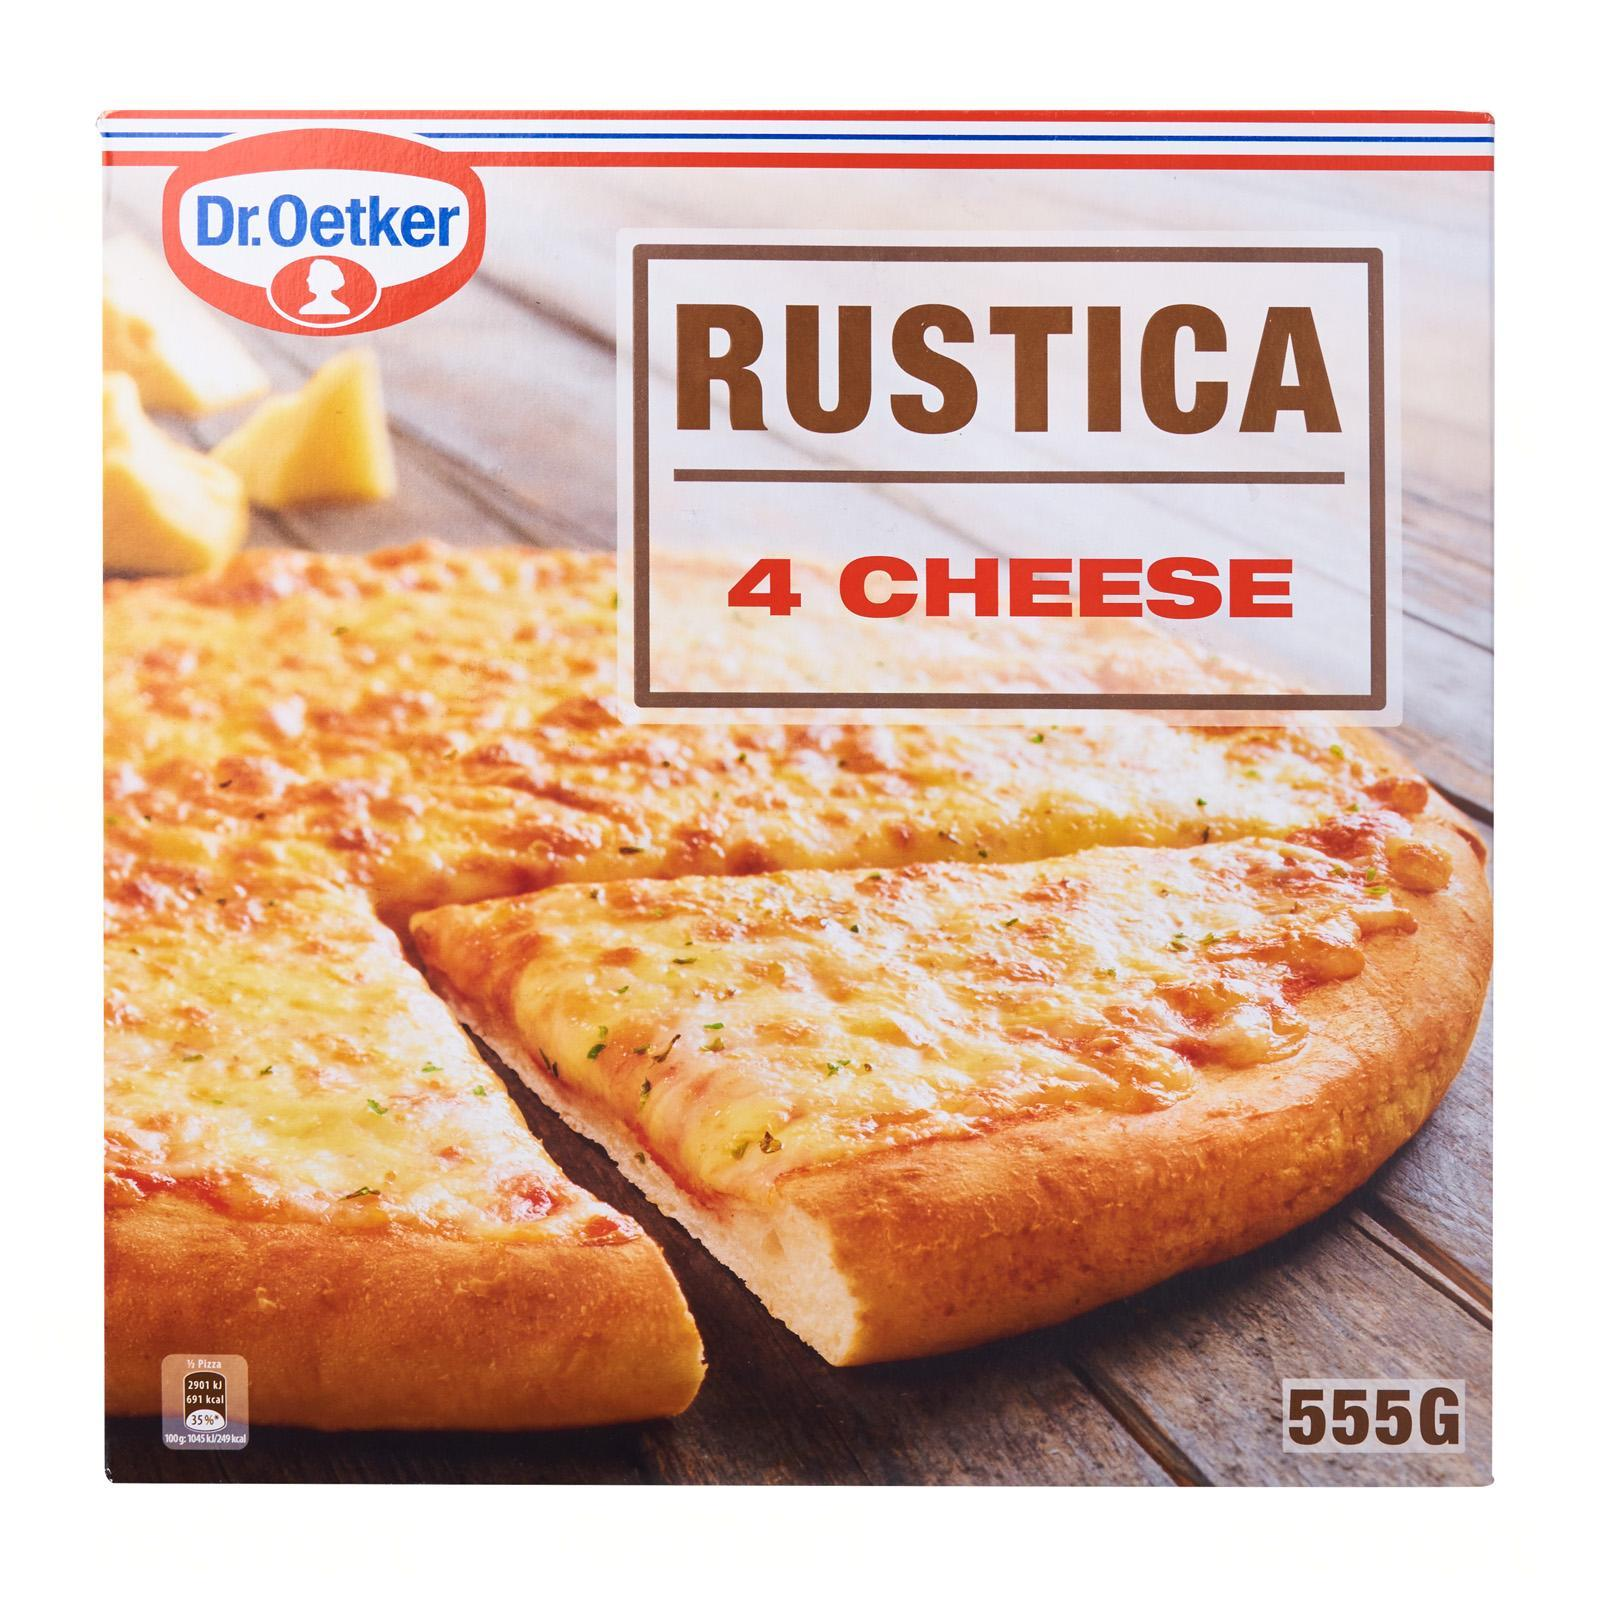 Dr Oetker Rustica 4 Cheese Pizza - Frozen